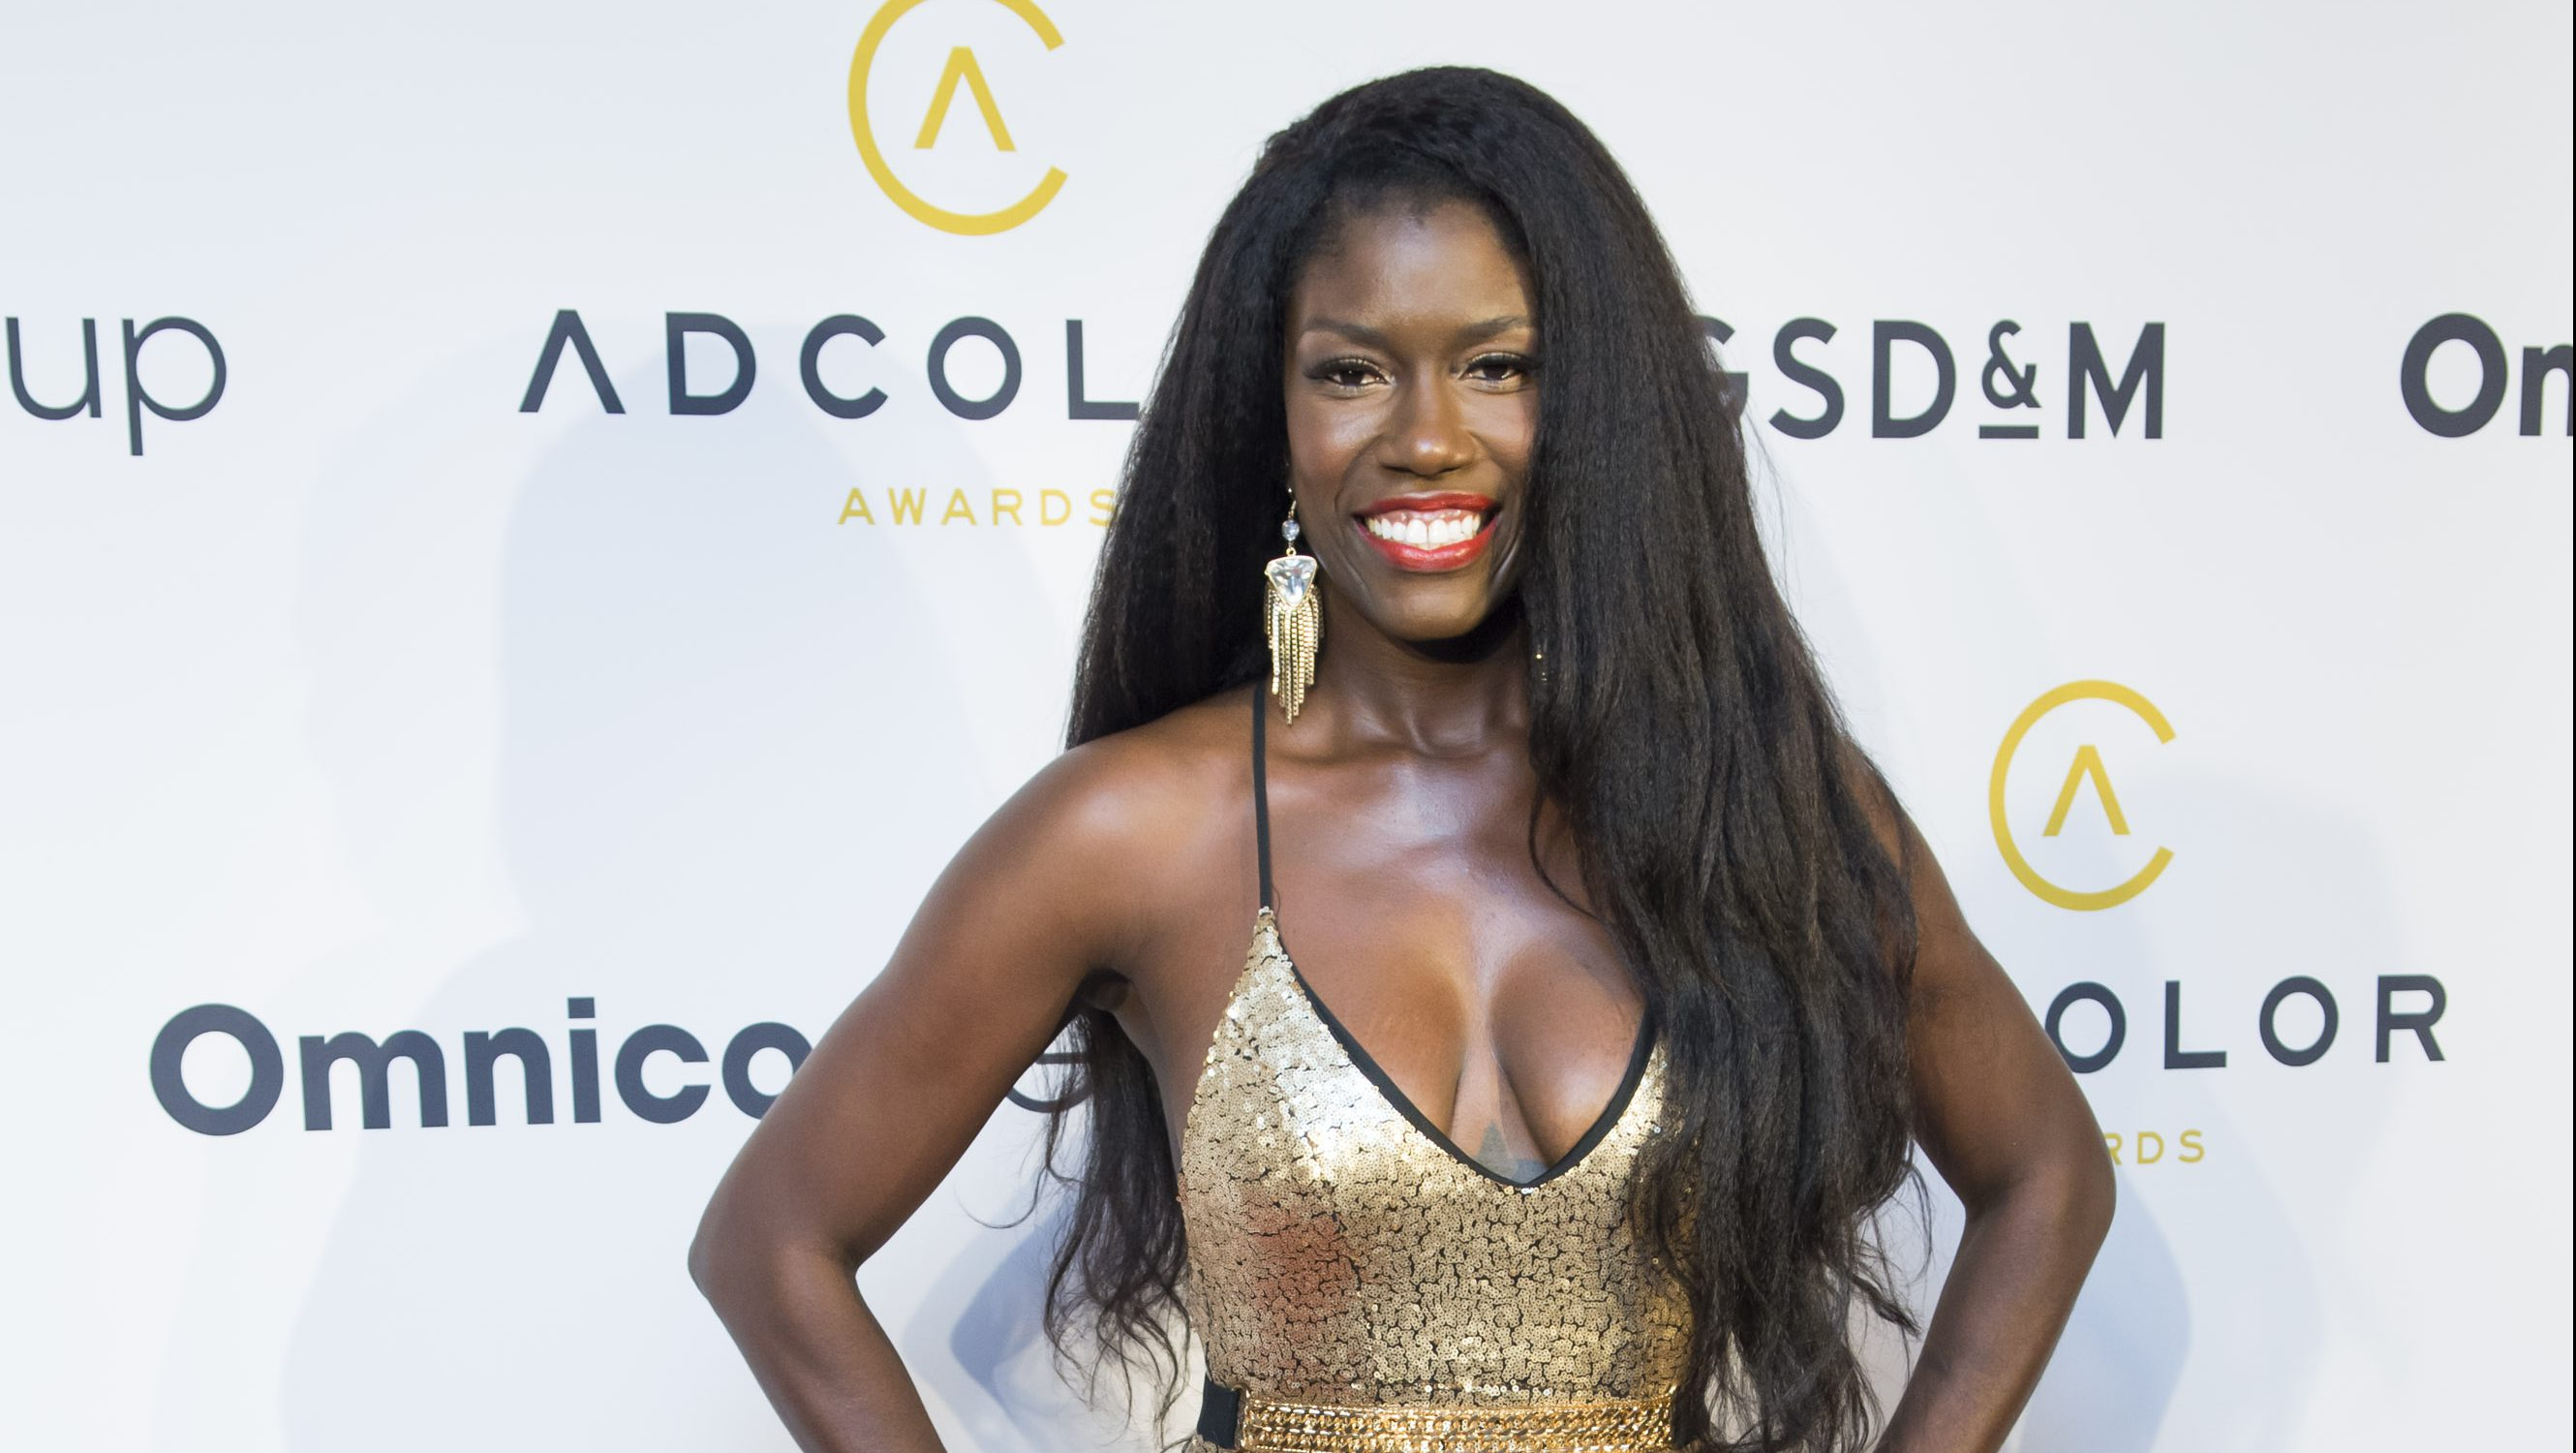 Bozoma Saint John at the ADCOLOR 10th Annual Awards at the Boca Raton Resort & Club  on Wednesday, Sept. 21, 2016 in Boca Raton, Florida. (Photo by Mitchell Zachs/Invision for ADCOLOR/AP Images)